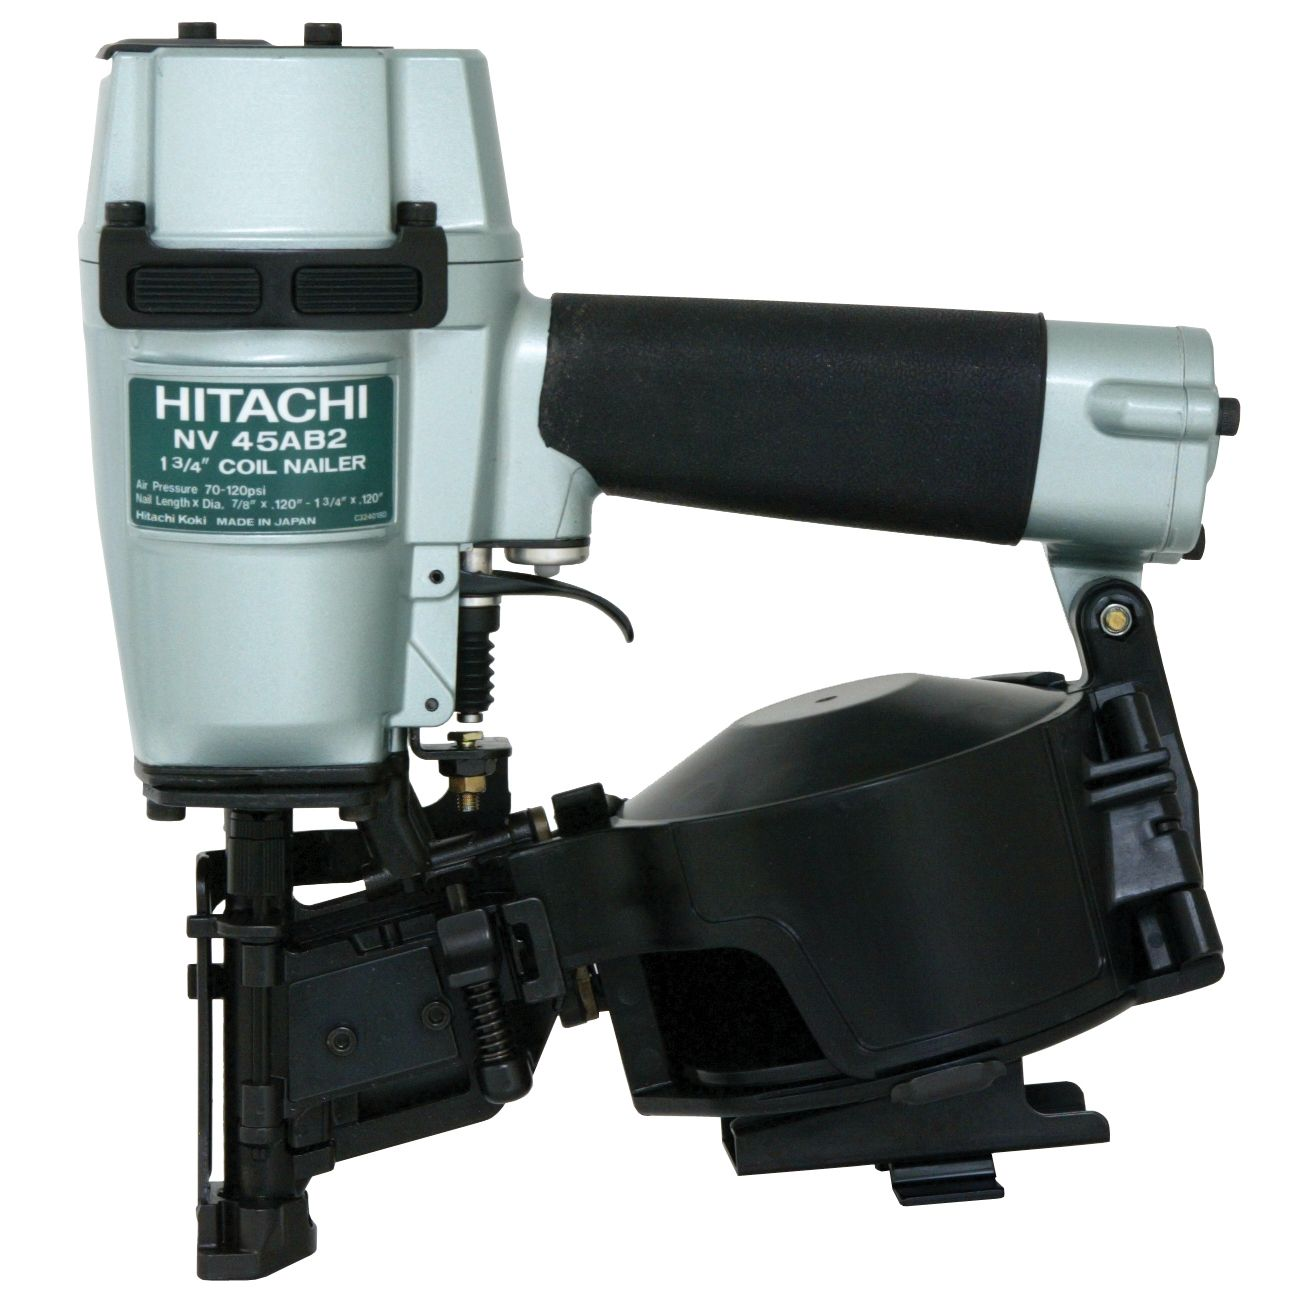 "Hitachi NV45AB2 13/4"" Coil & Roofing Nailer Overstock"